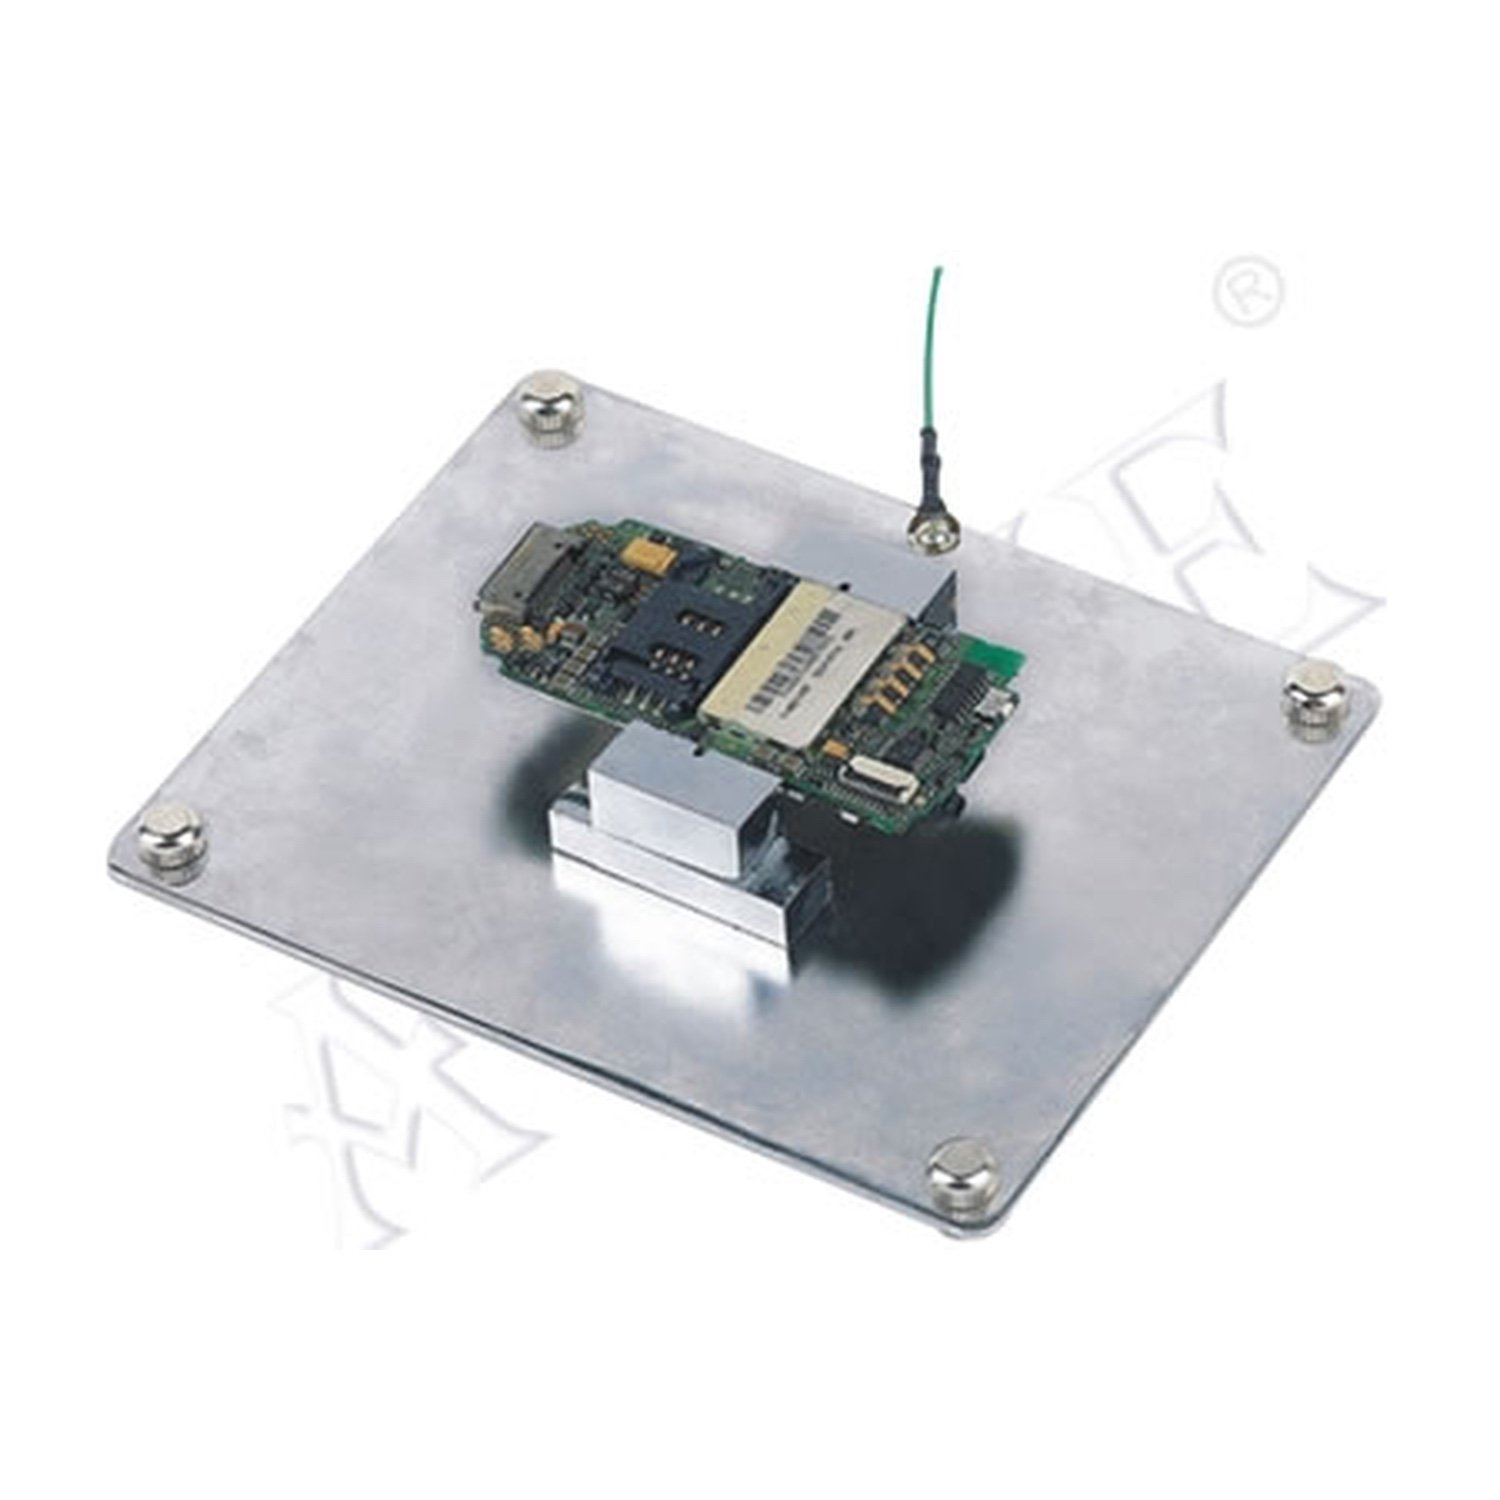 AOYUE 326 Platform For Work With PCB Boards